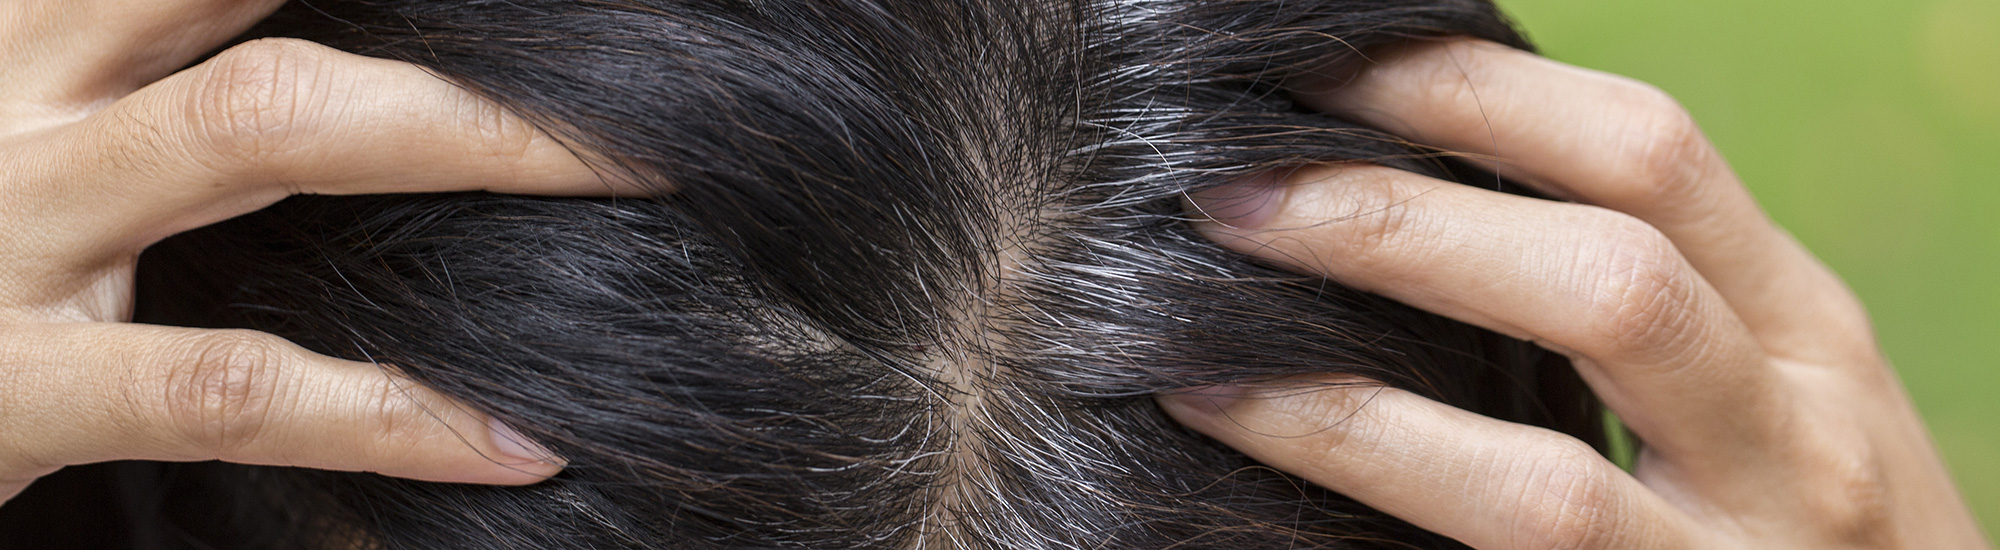 Ayurvedic treatment for Premature greying Causes